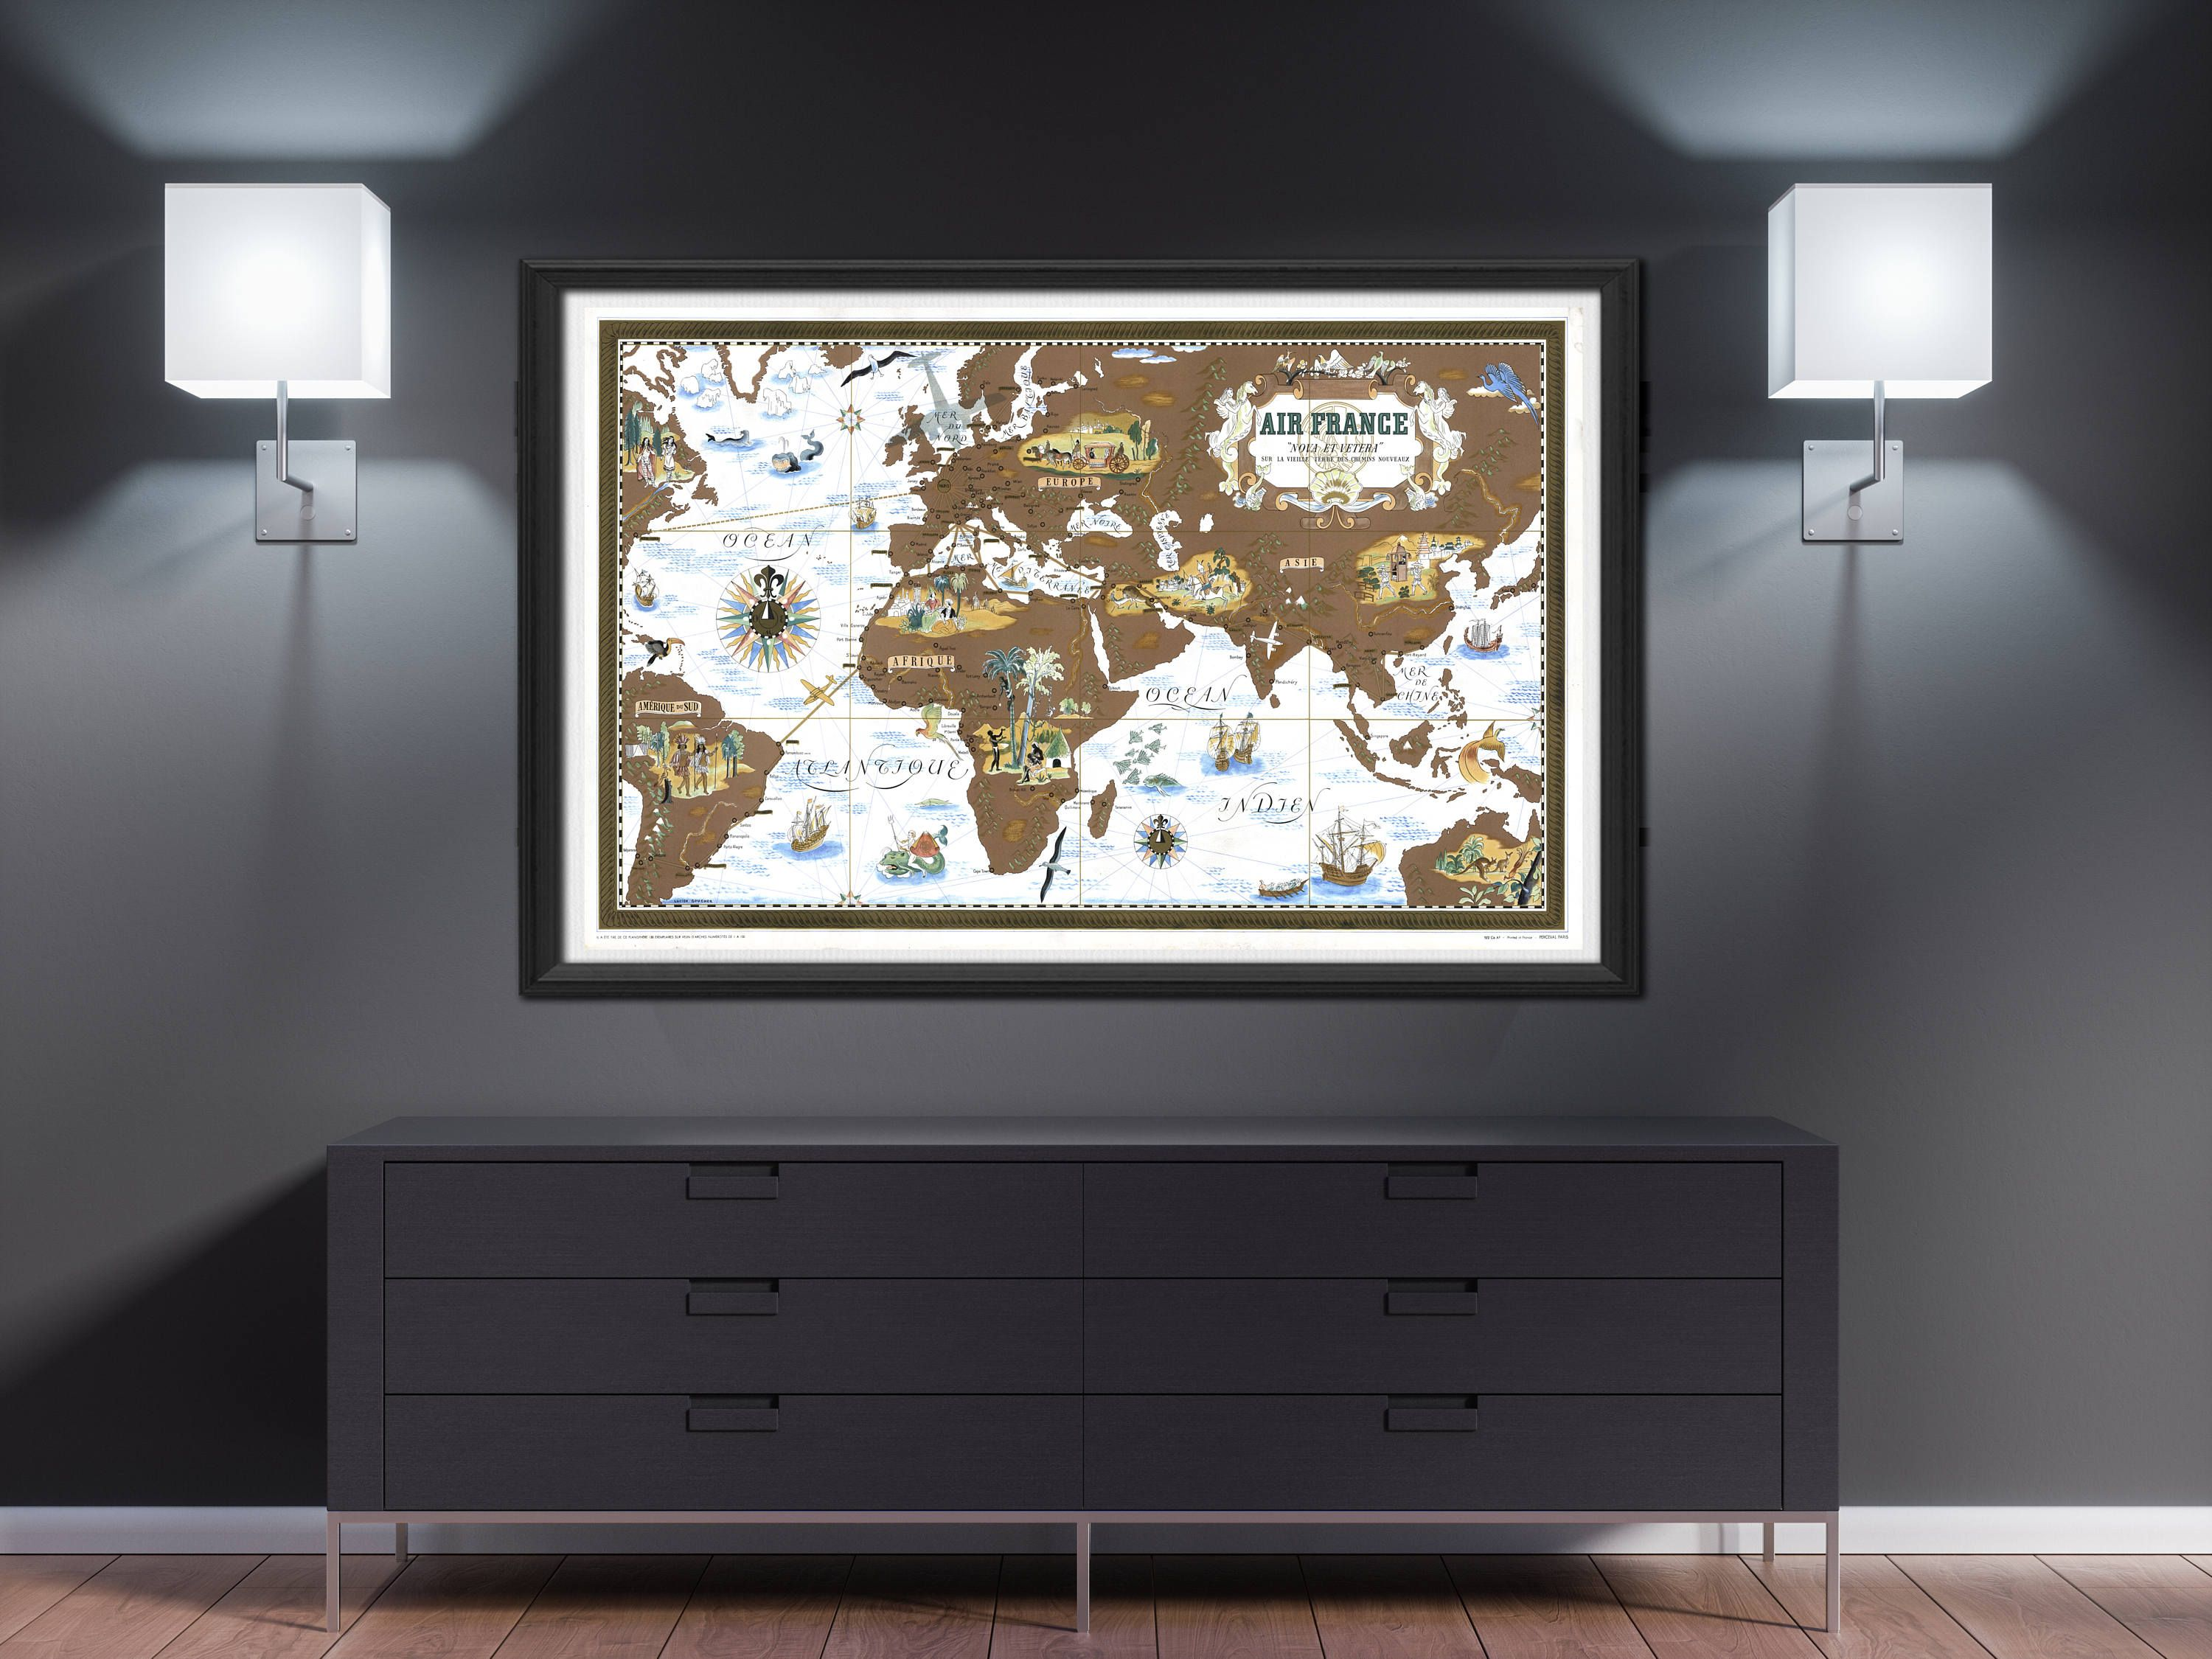 World map wall art 1939 air france world destination map poster world map wall art 1939 air france world destination map poster wanderlust gift large map vintage map decor ancient antique mappemonde gumiabroncs Gallery